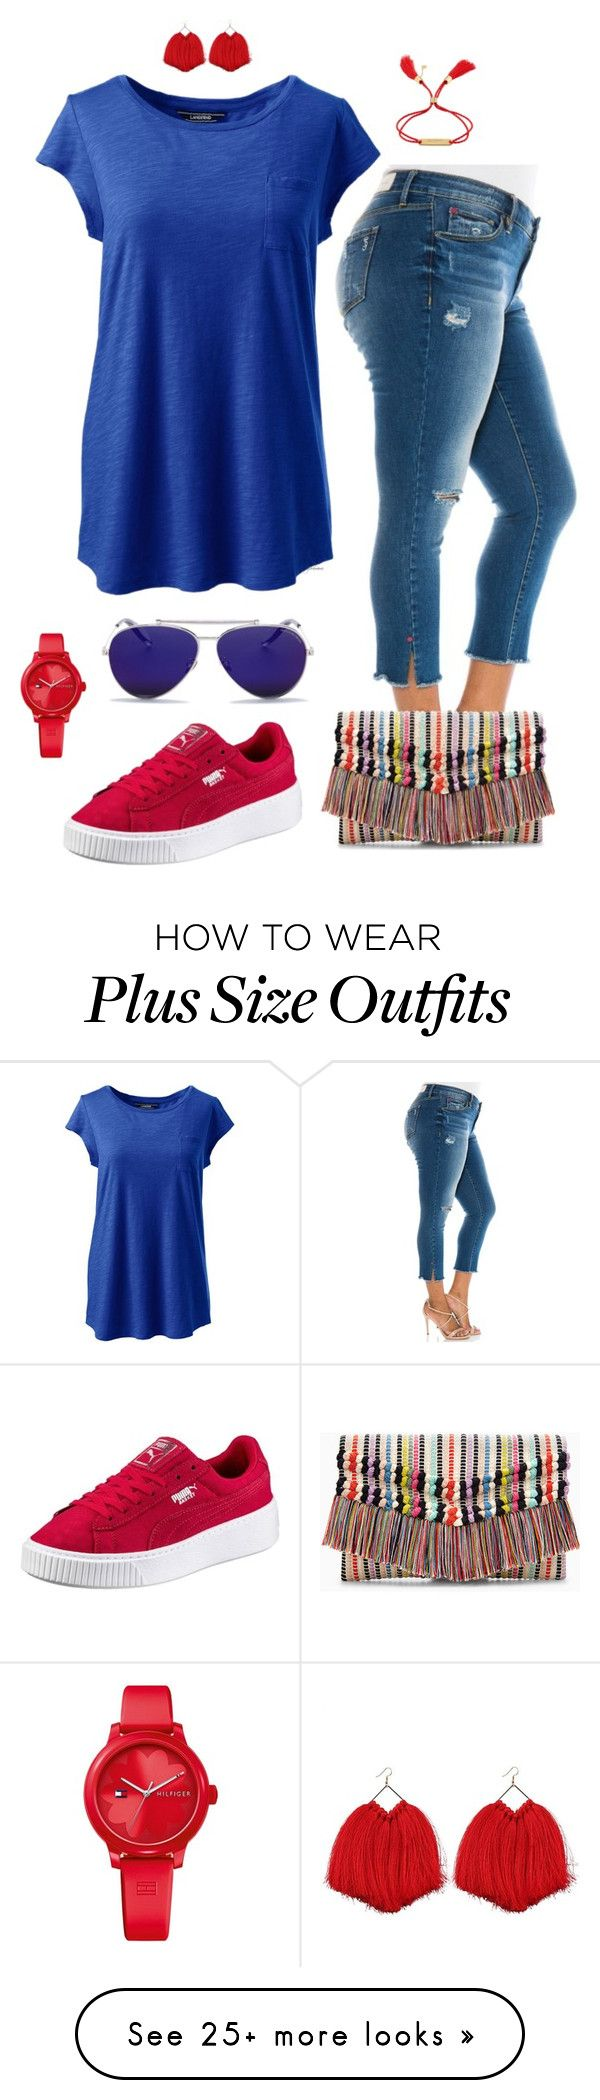 """Fun night- plus size"" by gchamama on Polyvore featuring Slink Jeans, Lands' End, Stella & Dot, Alexander McQueen, Tommy Hilfiger, Chloé and plus size clothing"